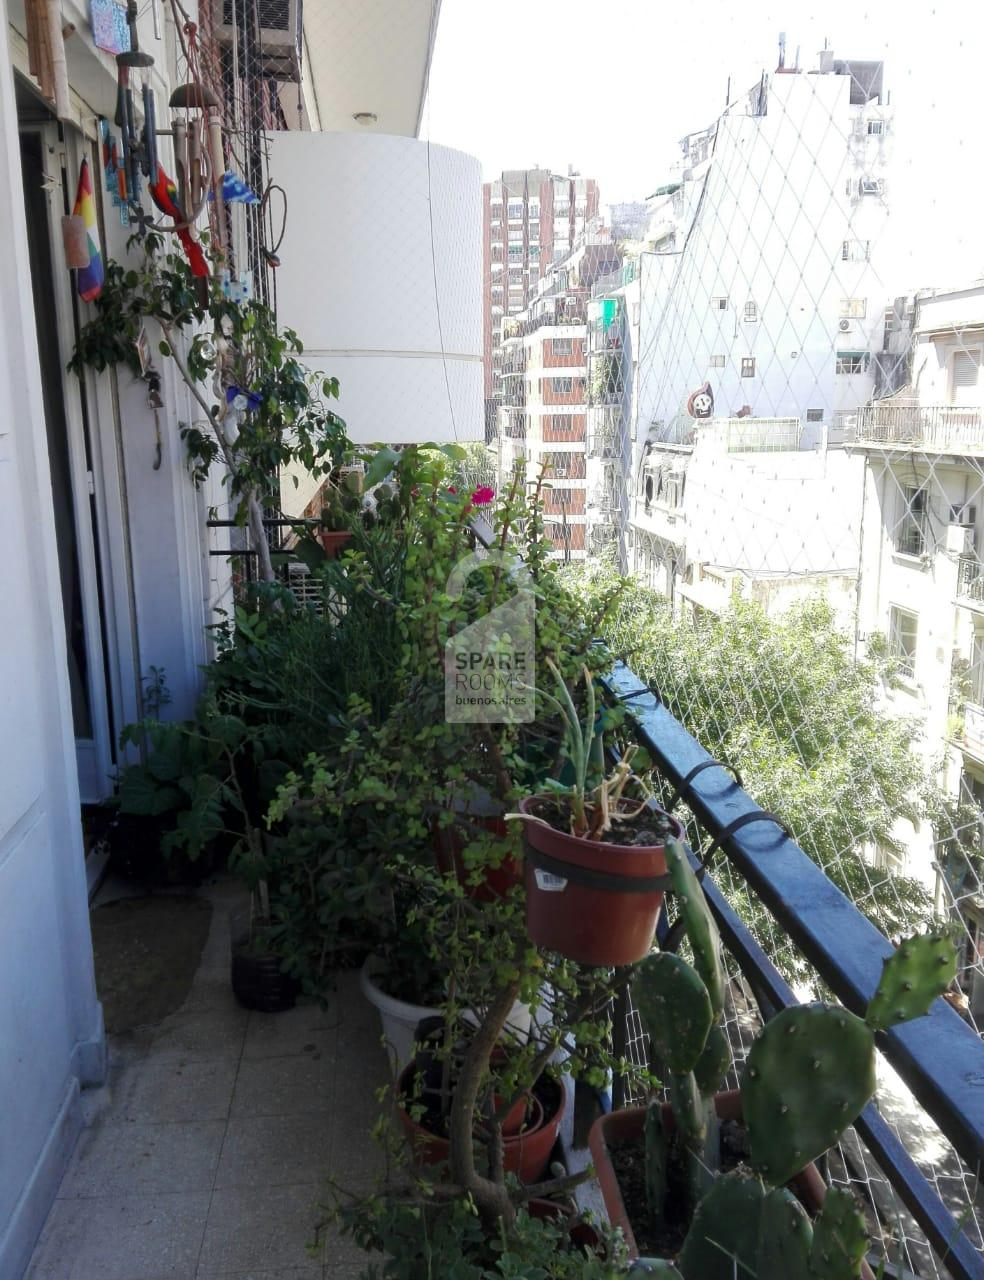 THE BALCONY at the apartment in Palermo